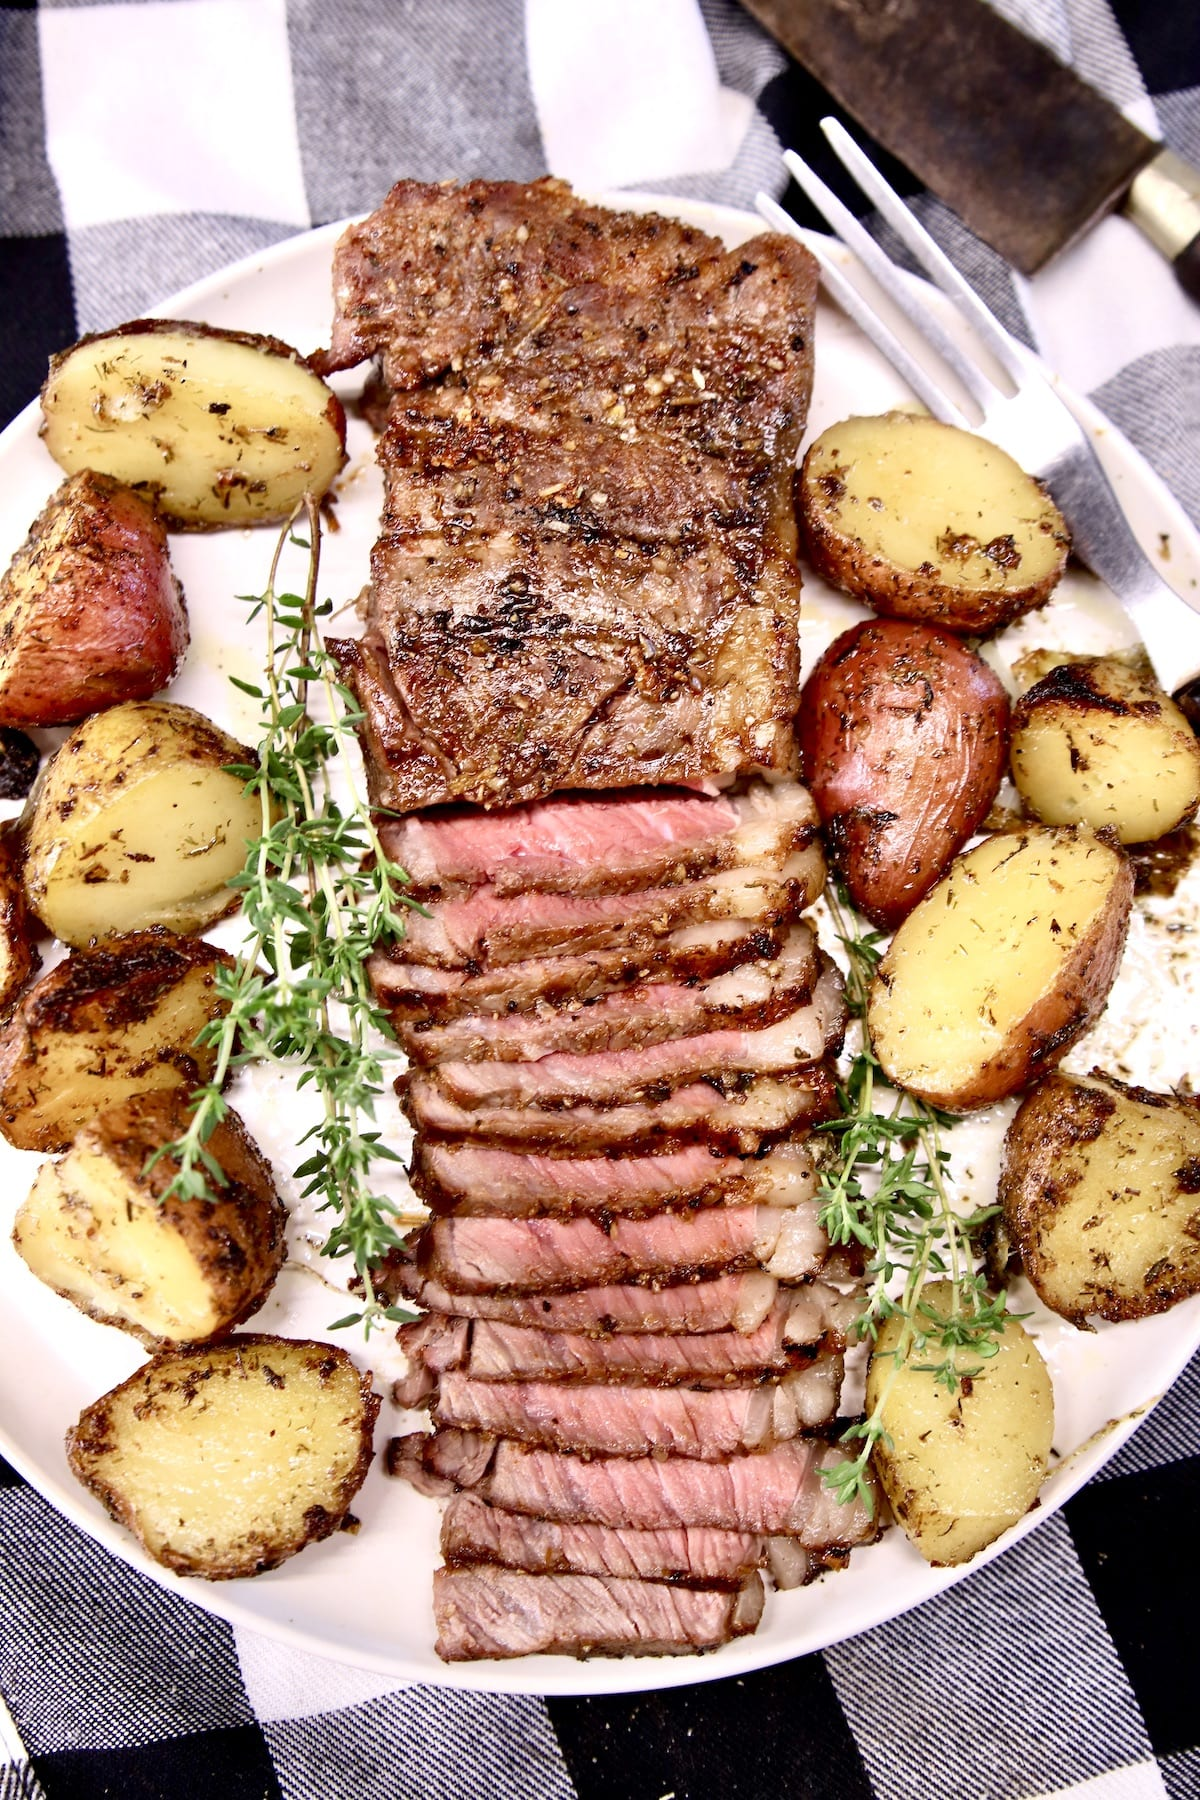 Grilled Strip Steak with roasted potatoes